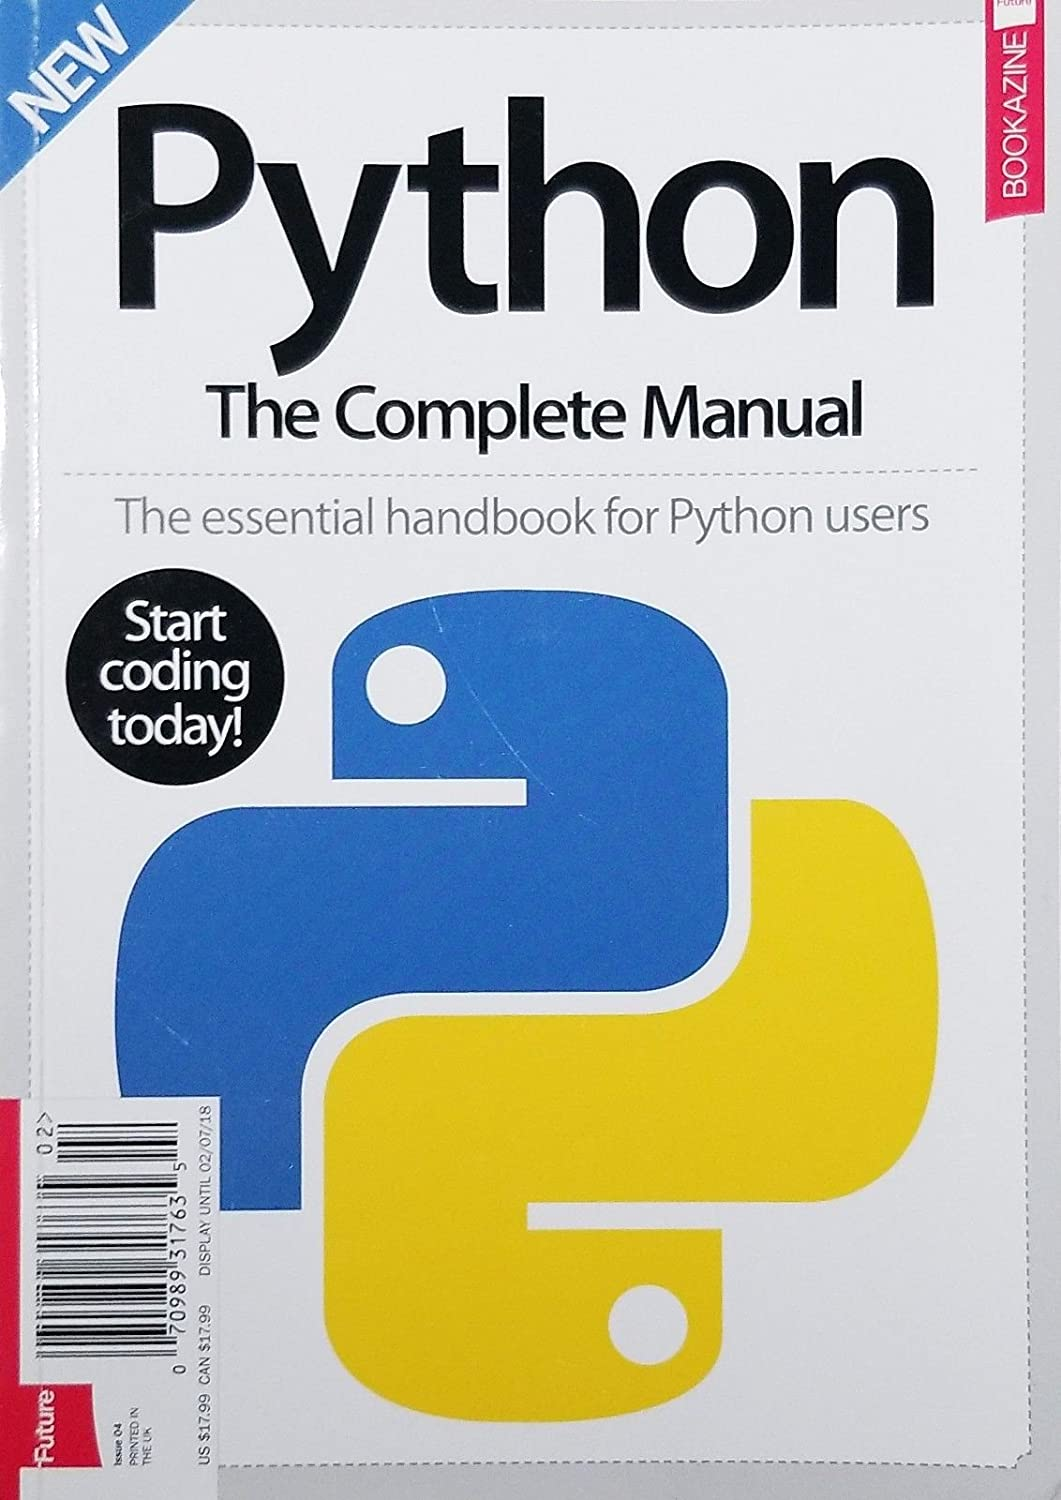 PYTHON THE COMPLETE MANUAL (START CODING TODAY) ISSUE 4^ s3457